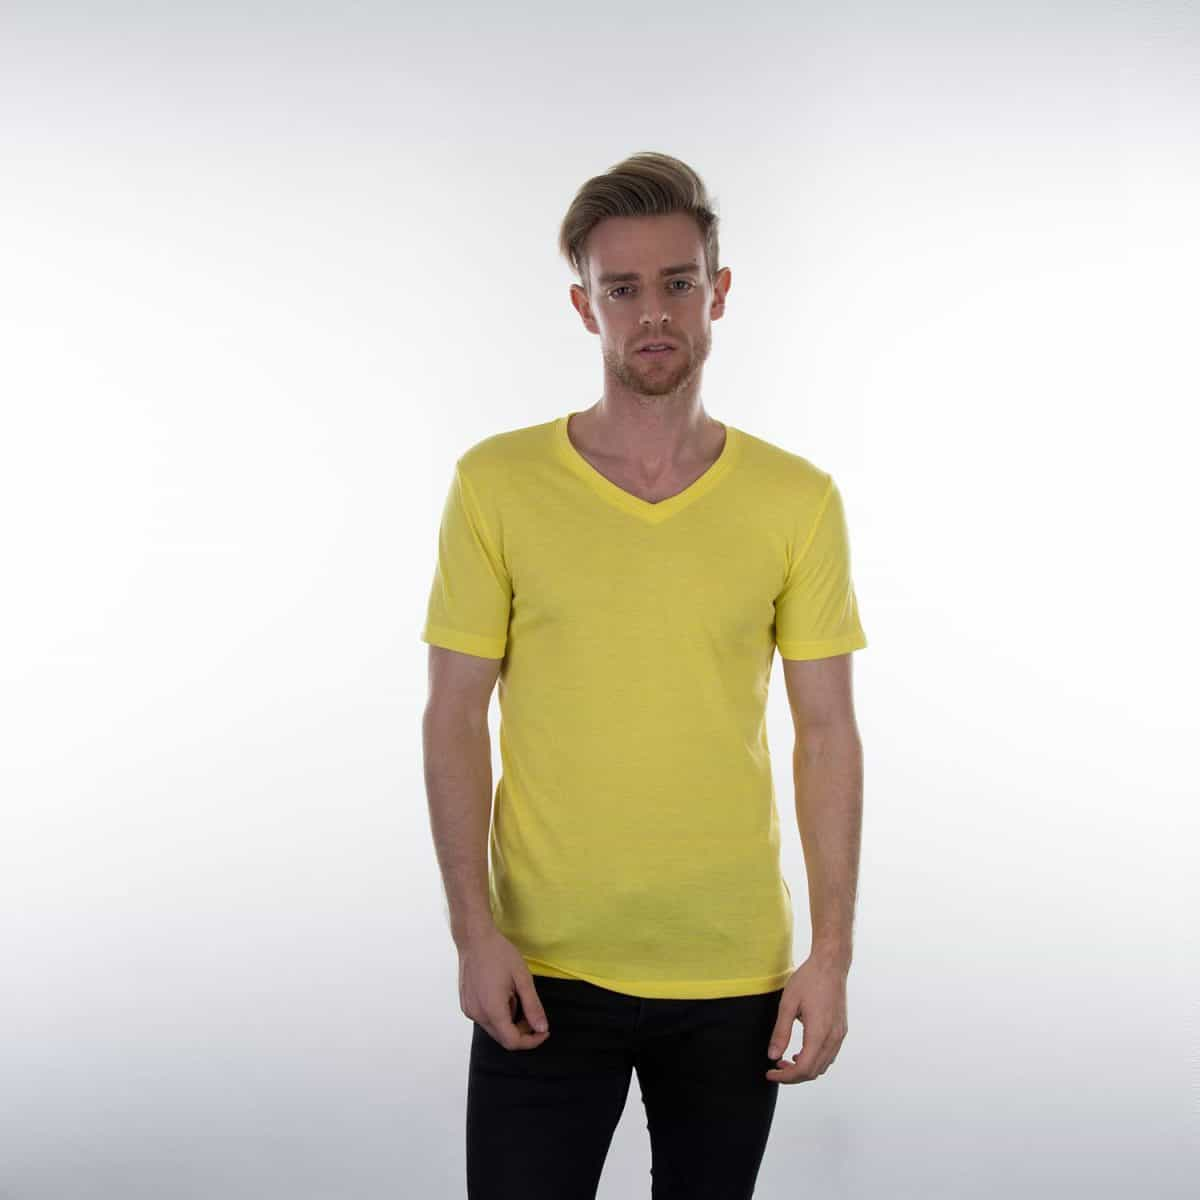 Daiber T Shirts JN974 Yellowmelange Model M